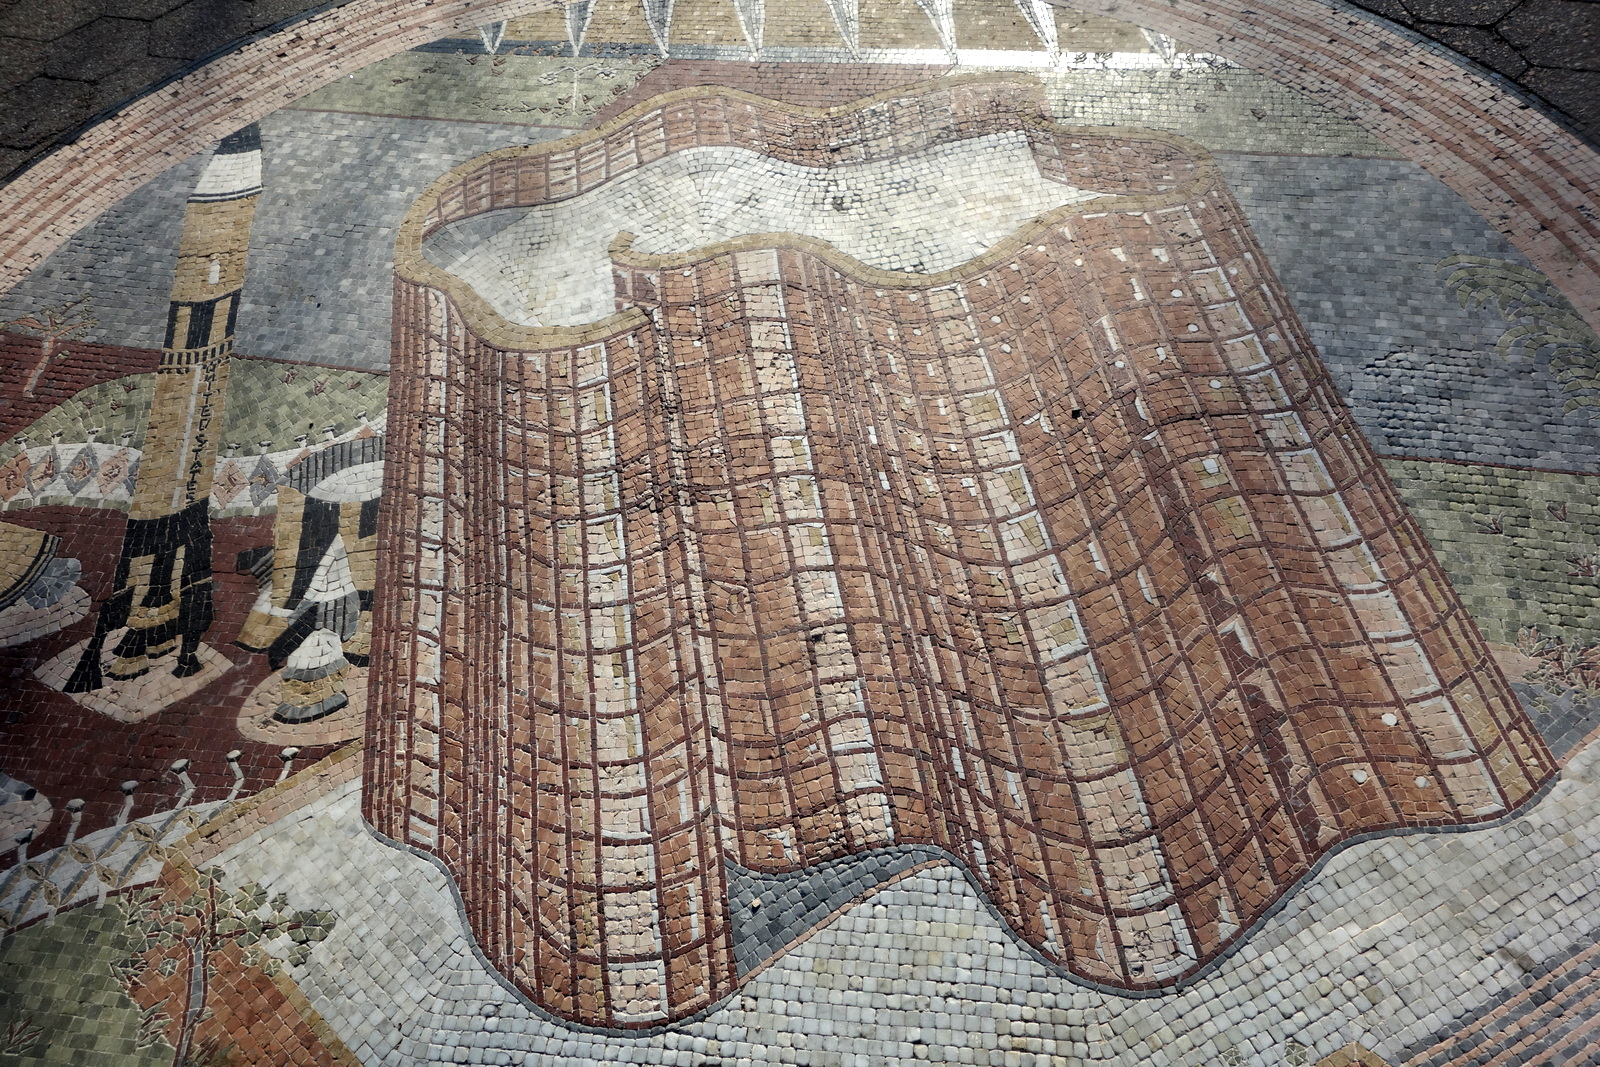 Thankfully the Great Hall mosaic didn't appear to have any patch problems.